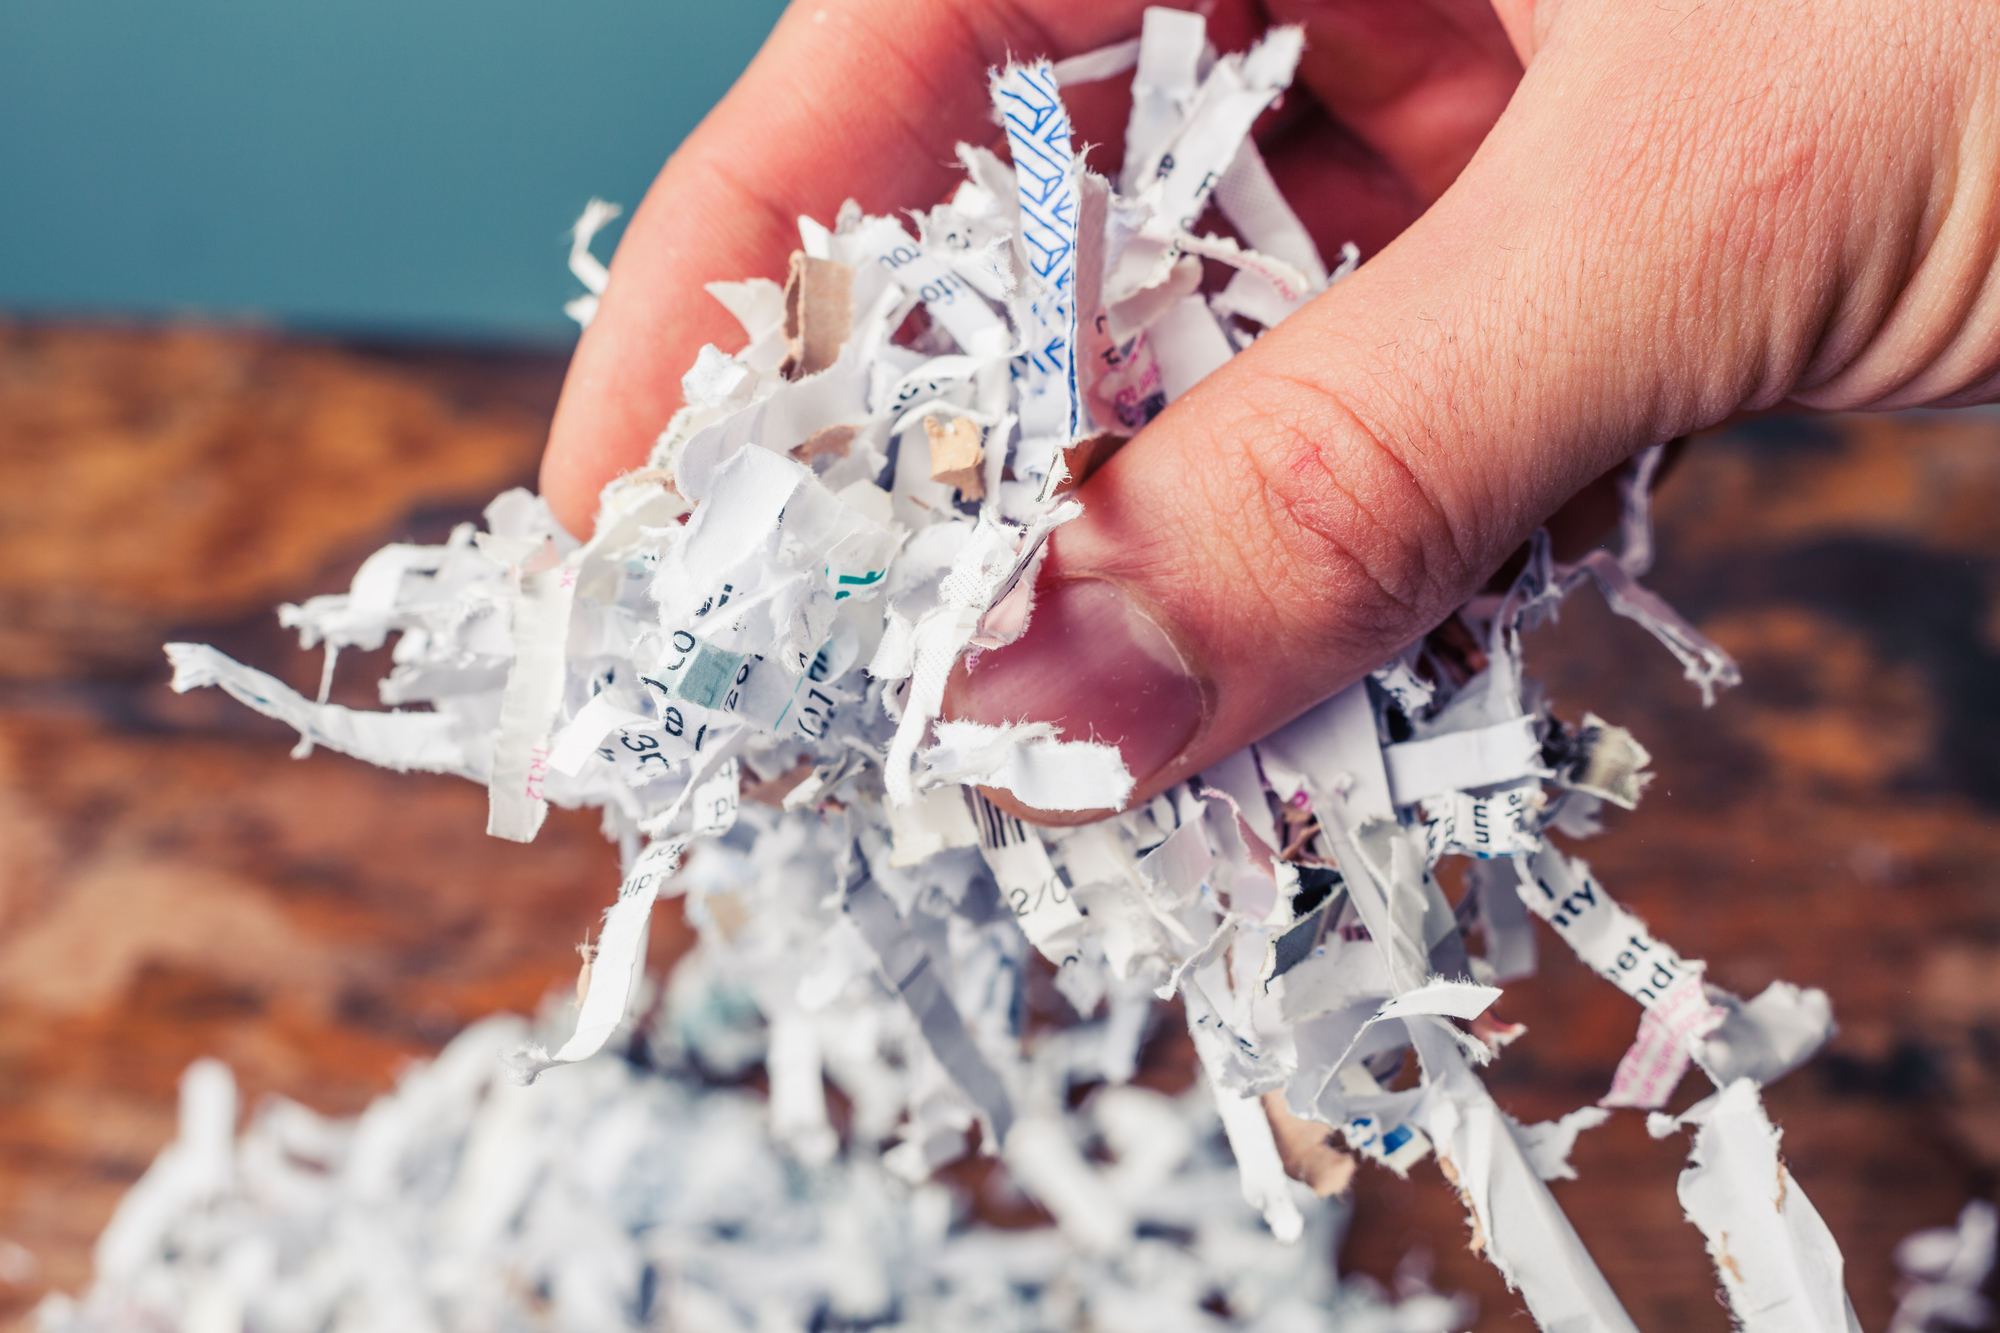 Boston Residential Shredding Company